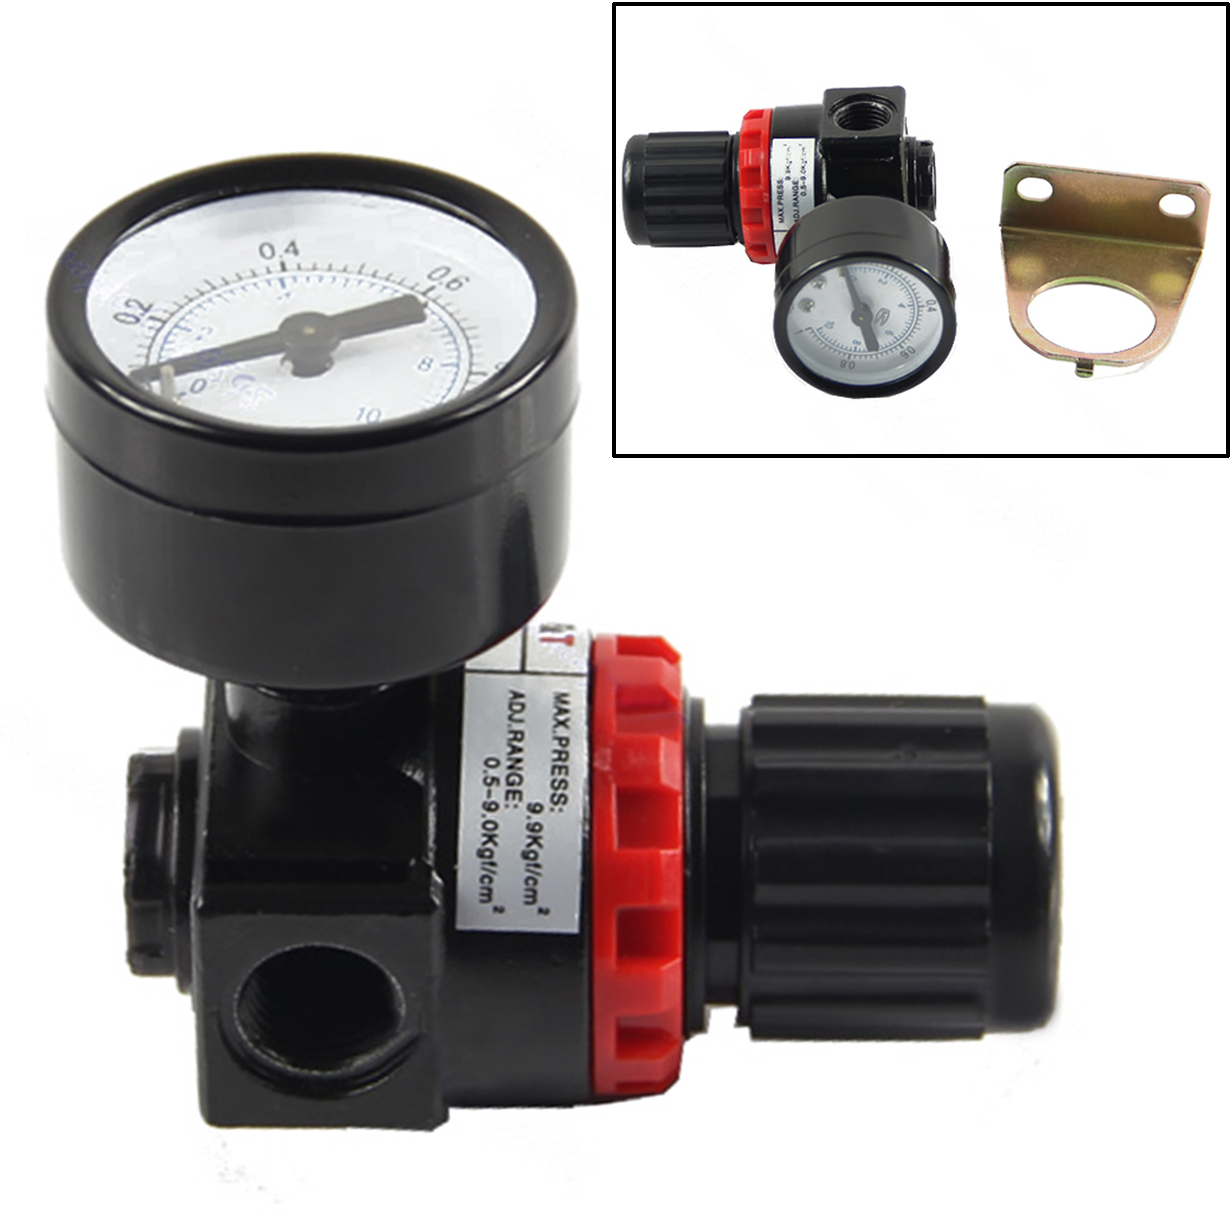 1pc Air Control Compressor Relief Regulator Pressure Regulating Valve AR2000 75x40x40mm air compressor pressure valve switch manifold relief regulator gauges 0 180psi 240v 45 75 80mm popular